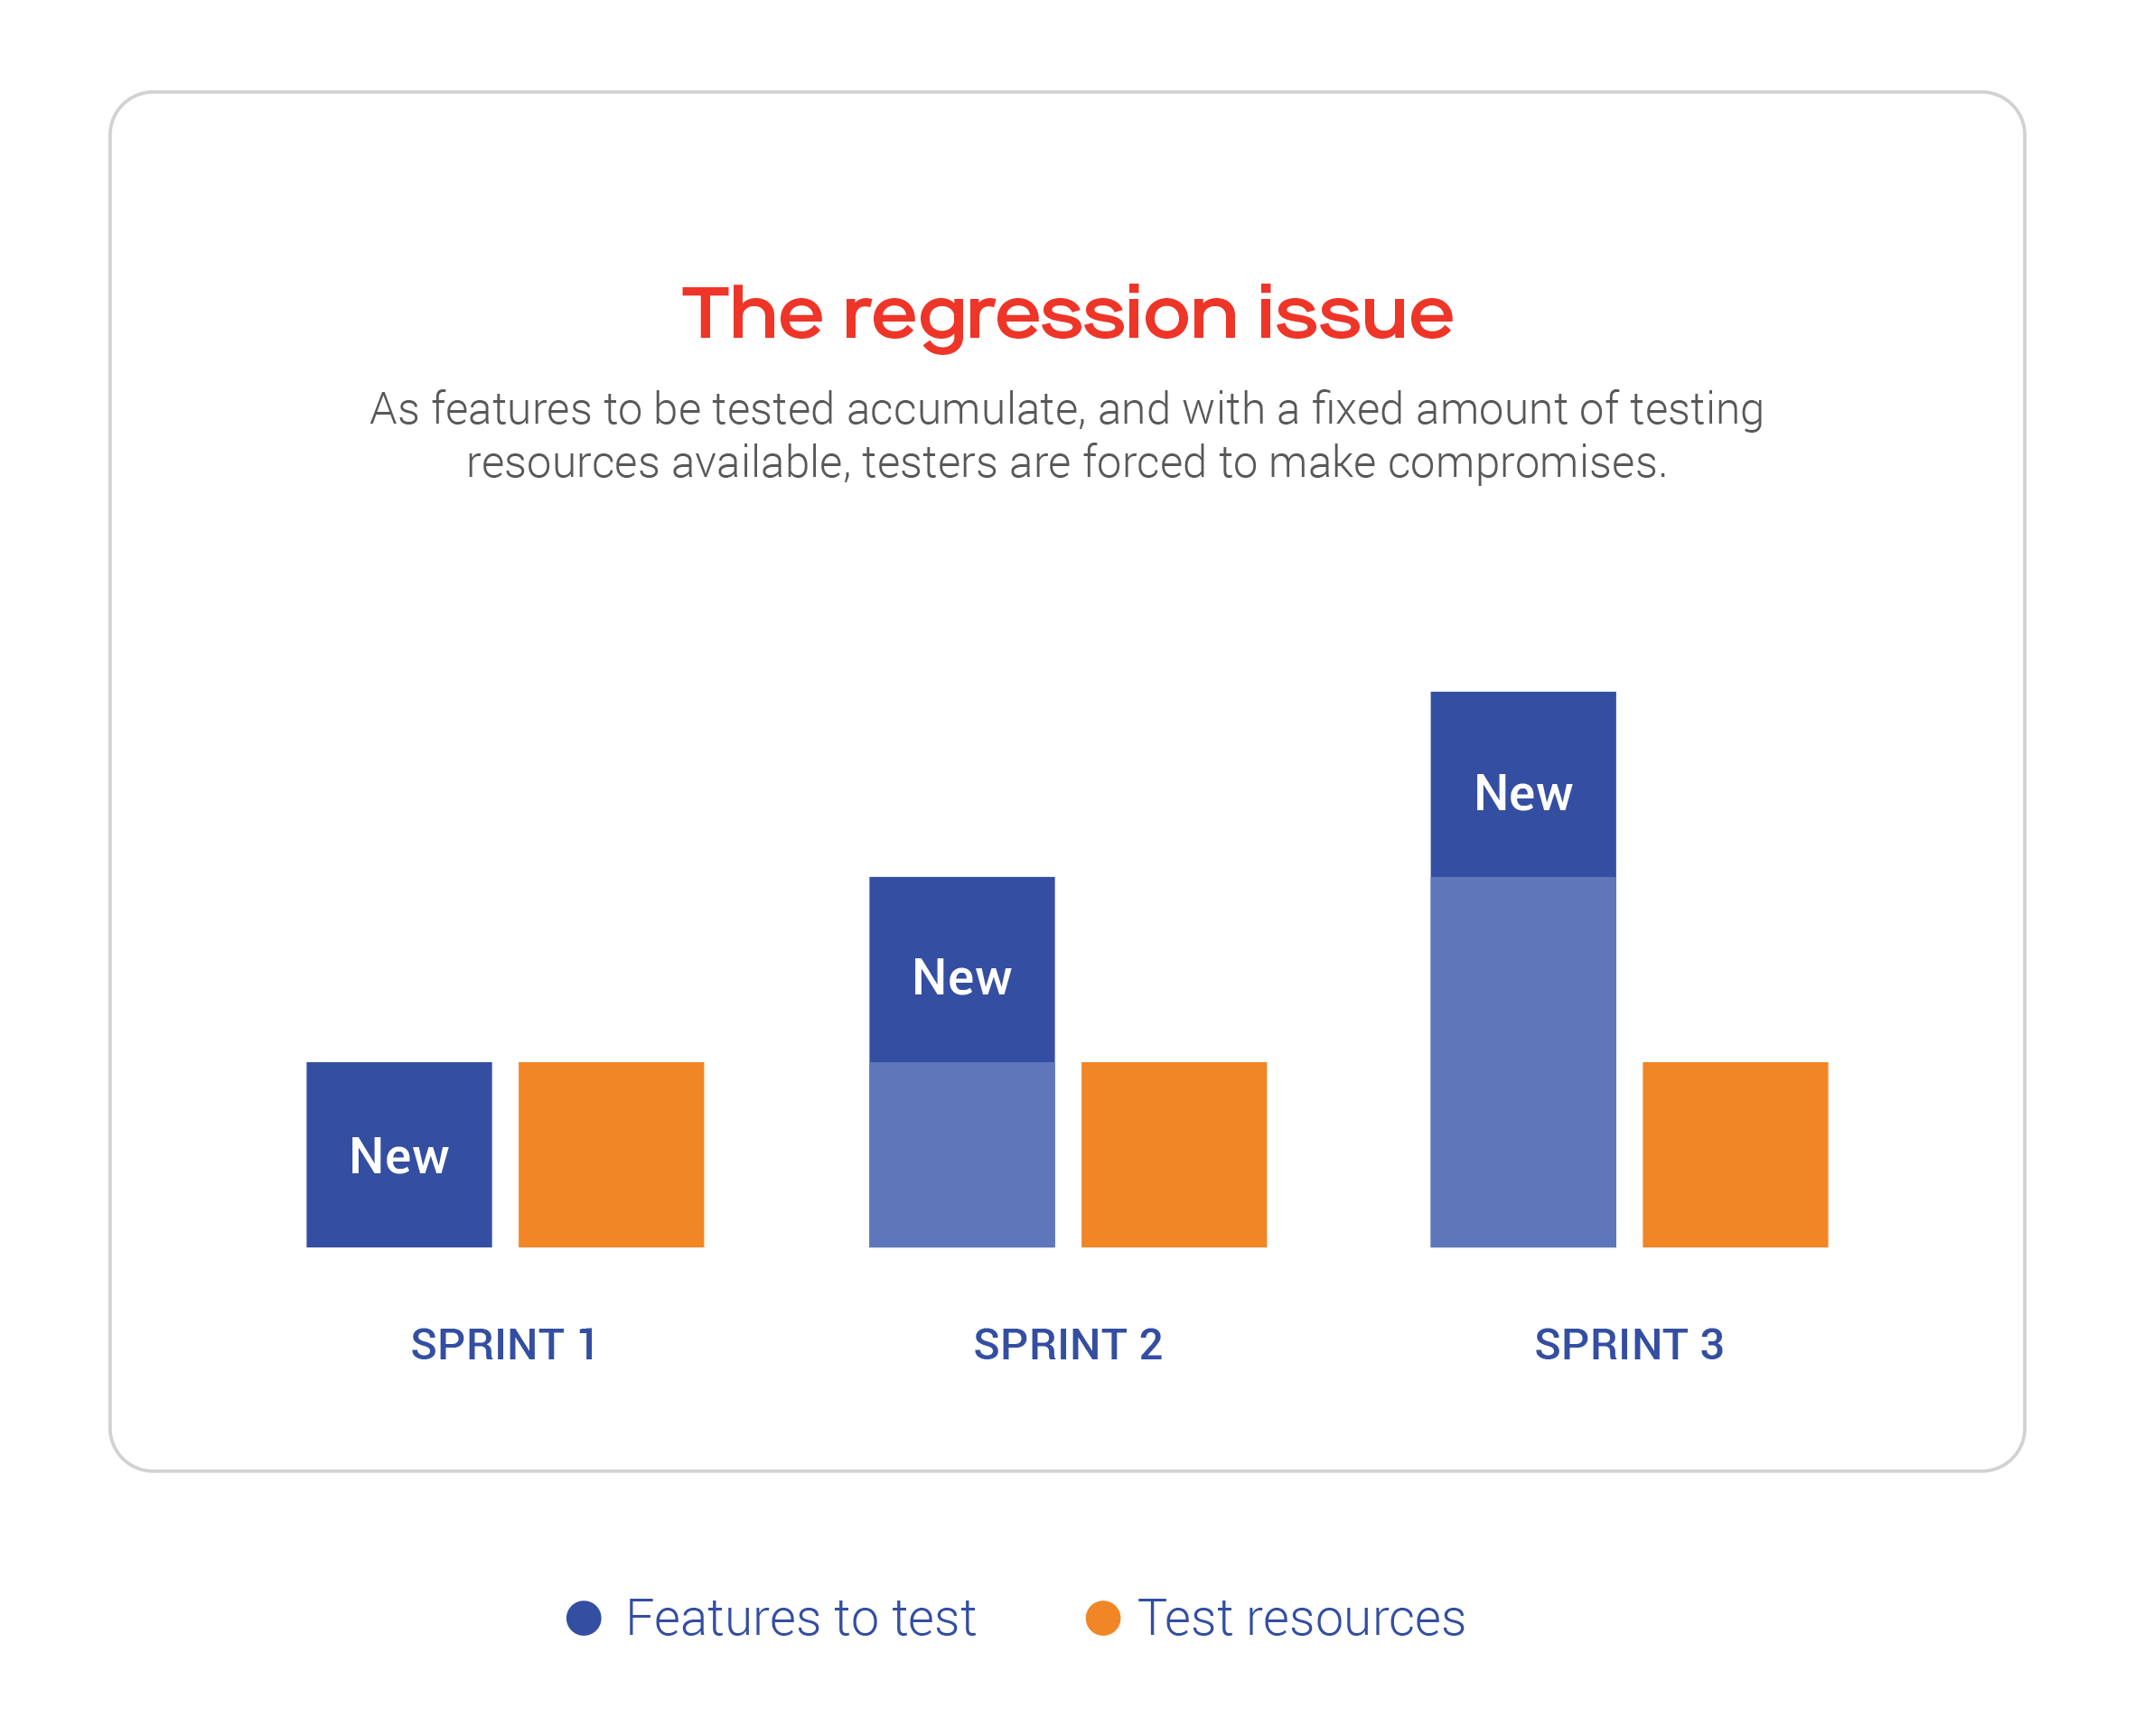 The regression issue